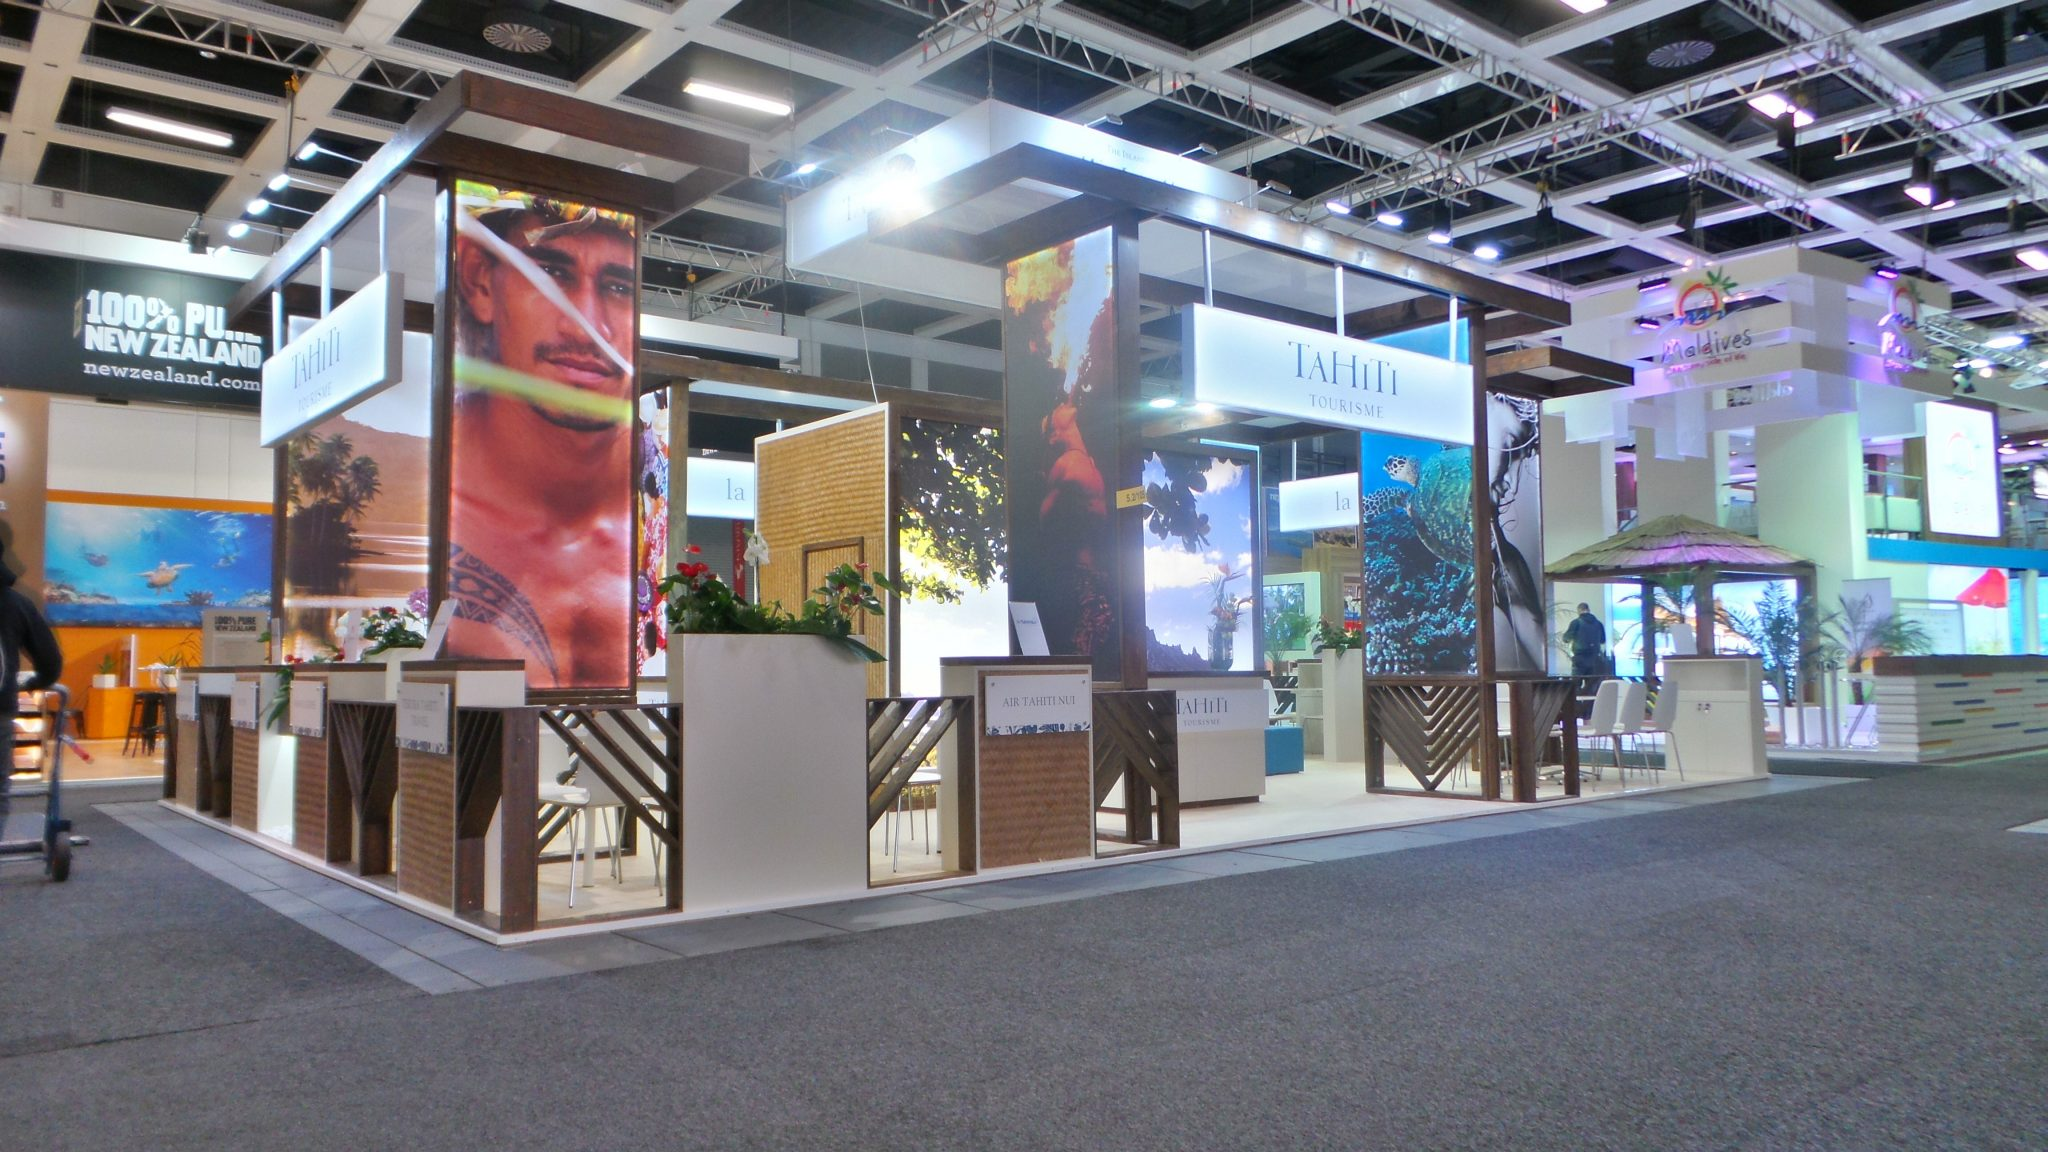 Our exhibition stand for Tahiti Tourism